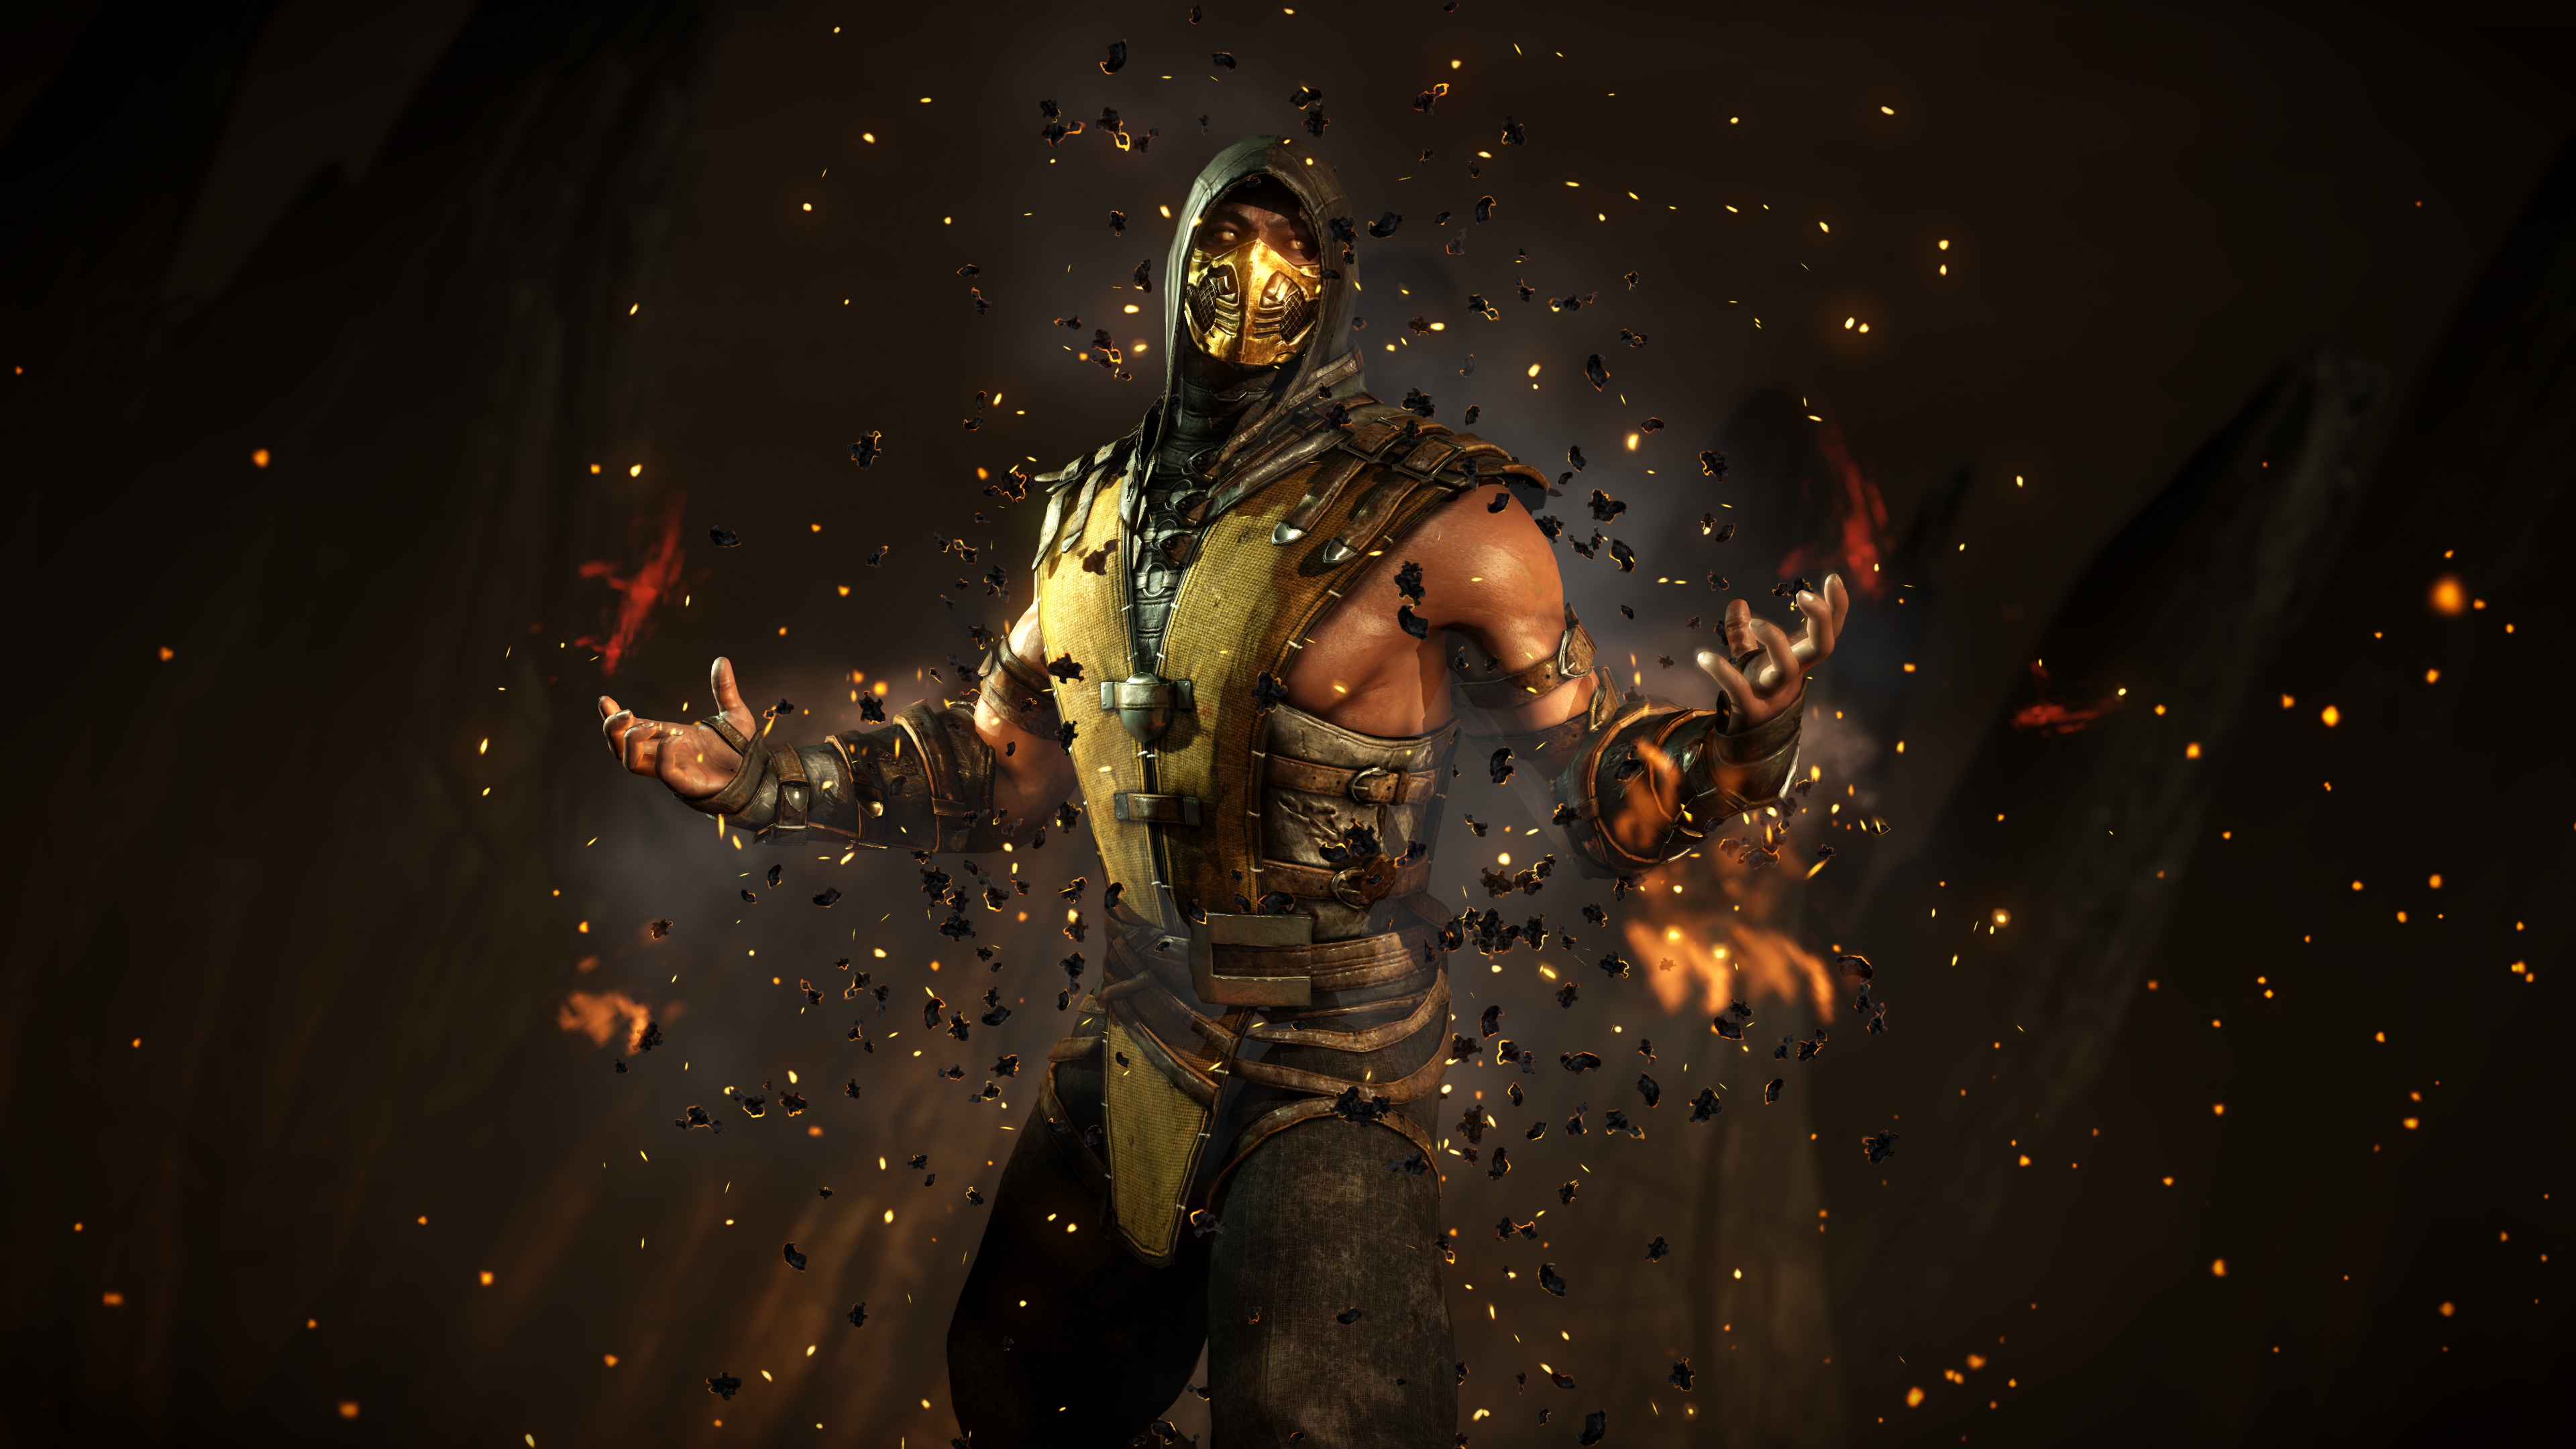 Scorpion mortal kombat x 4k hd games 4k wallpapers - Mortal kombat scorpion wallpaper ...